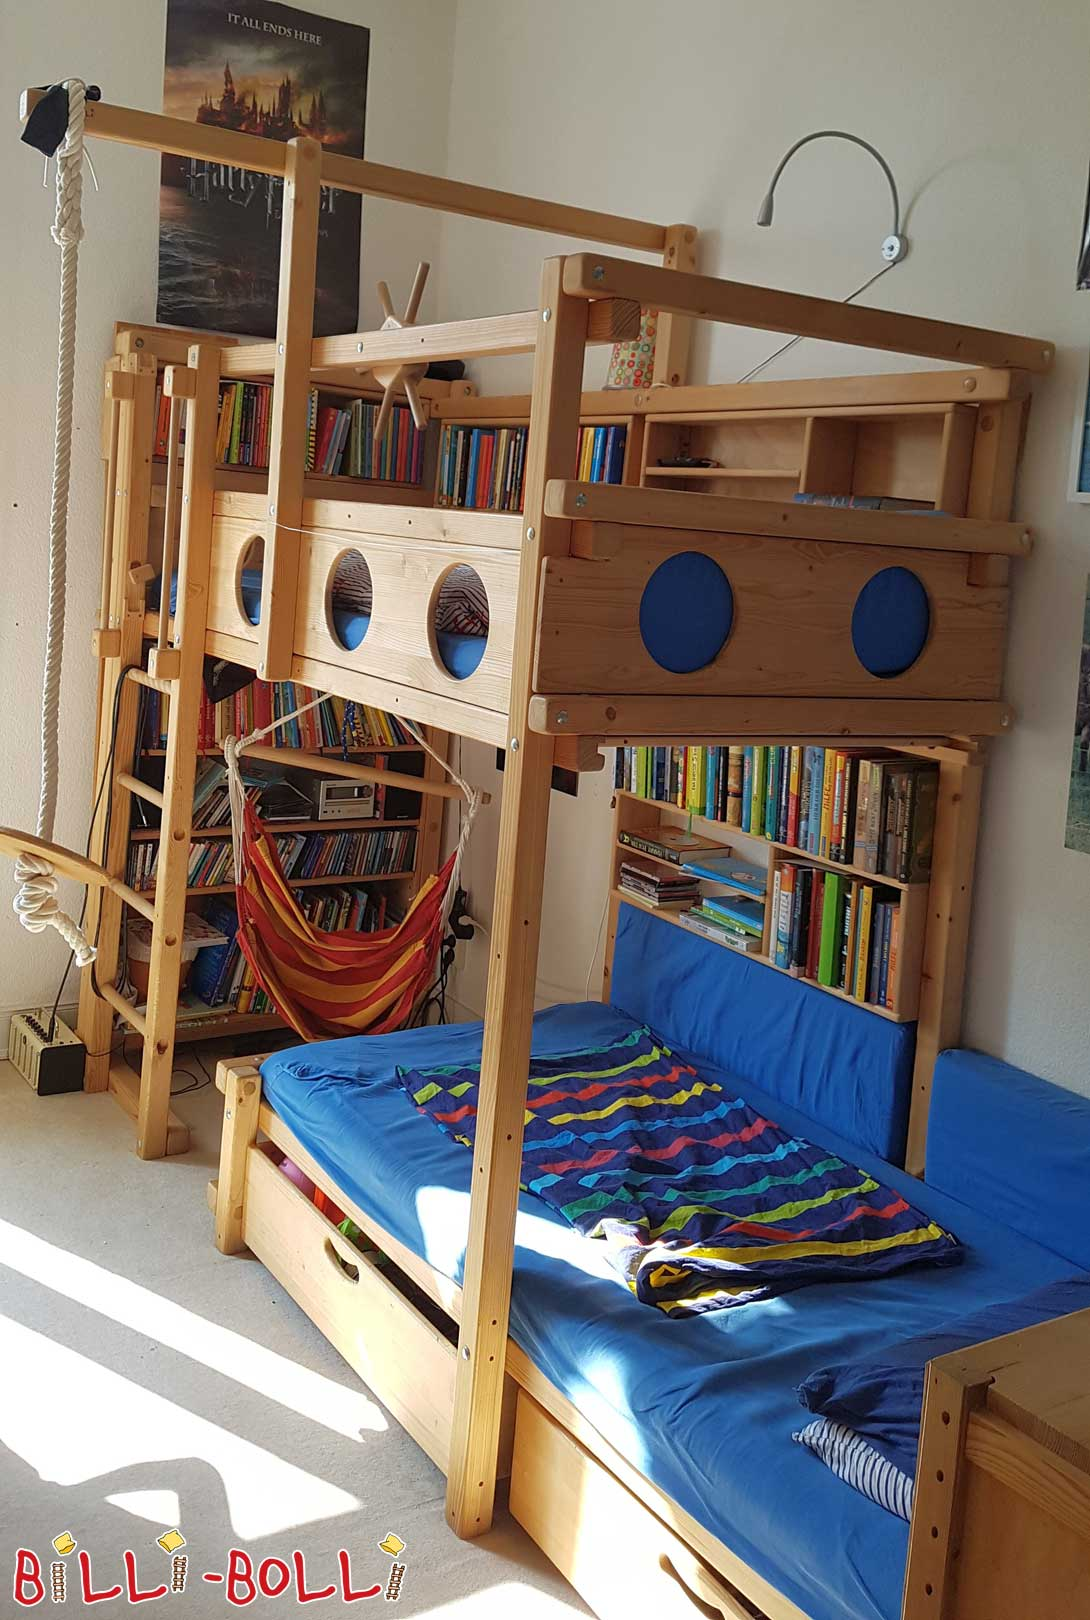 Pirate bed-side places (second hand bunk bed)